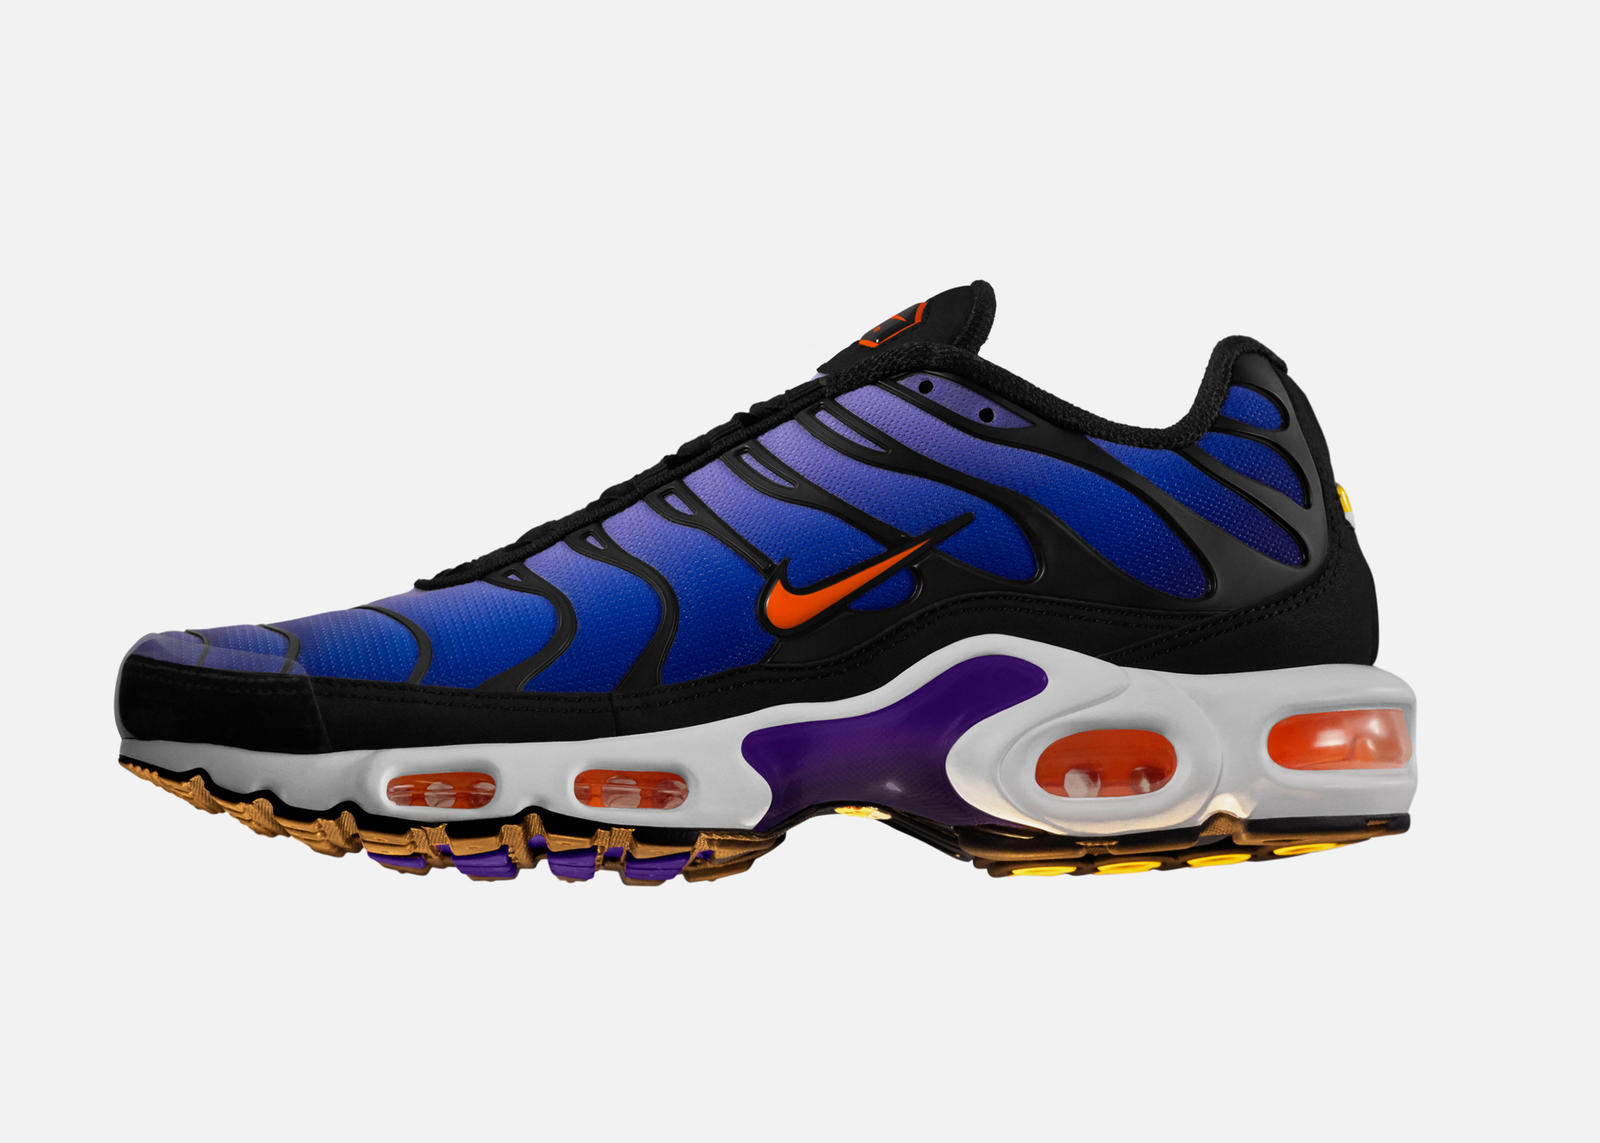 36b369549a9 The Untold Story of the Nike Air Max Plus 18. The Nike Air Max in Purple